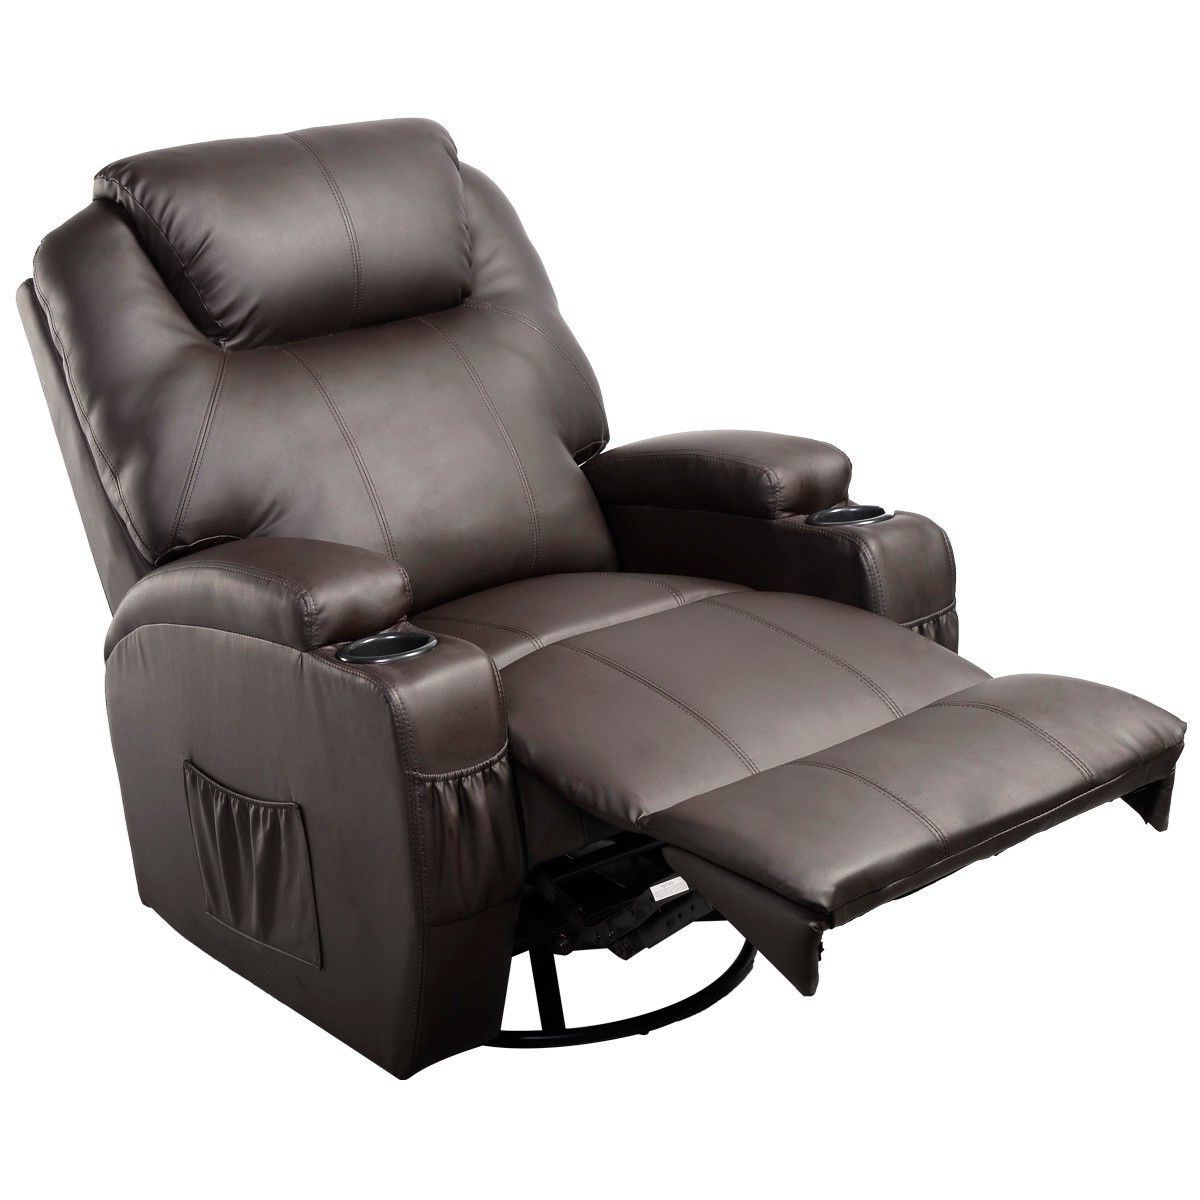 Most Recent Awesome Recliner Sofa Chair 96 For Sofa Room Ideas With Recliner Regarding Recliner Sofa Chairs (Gallery 2 of 20)